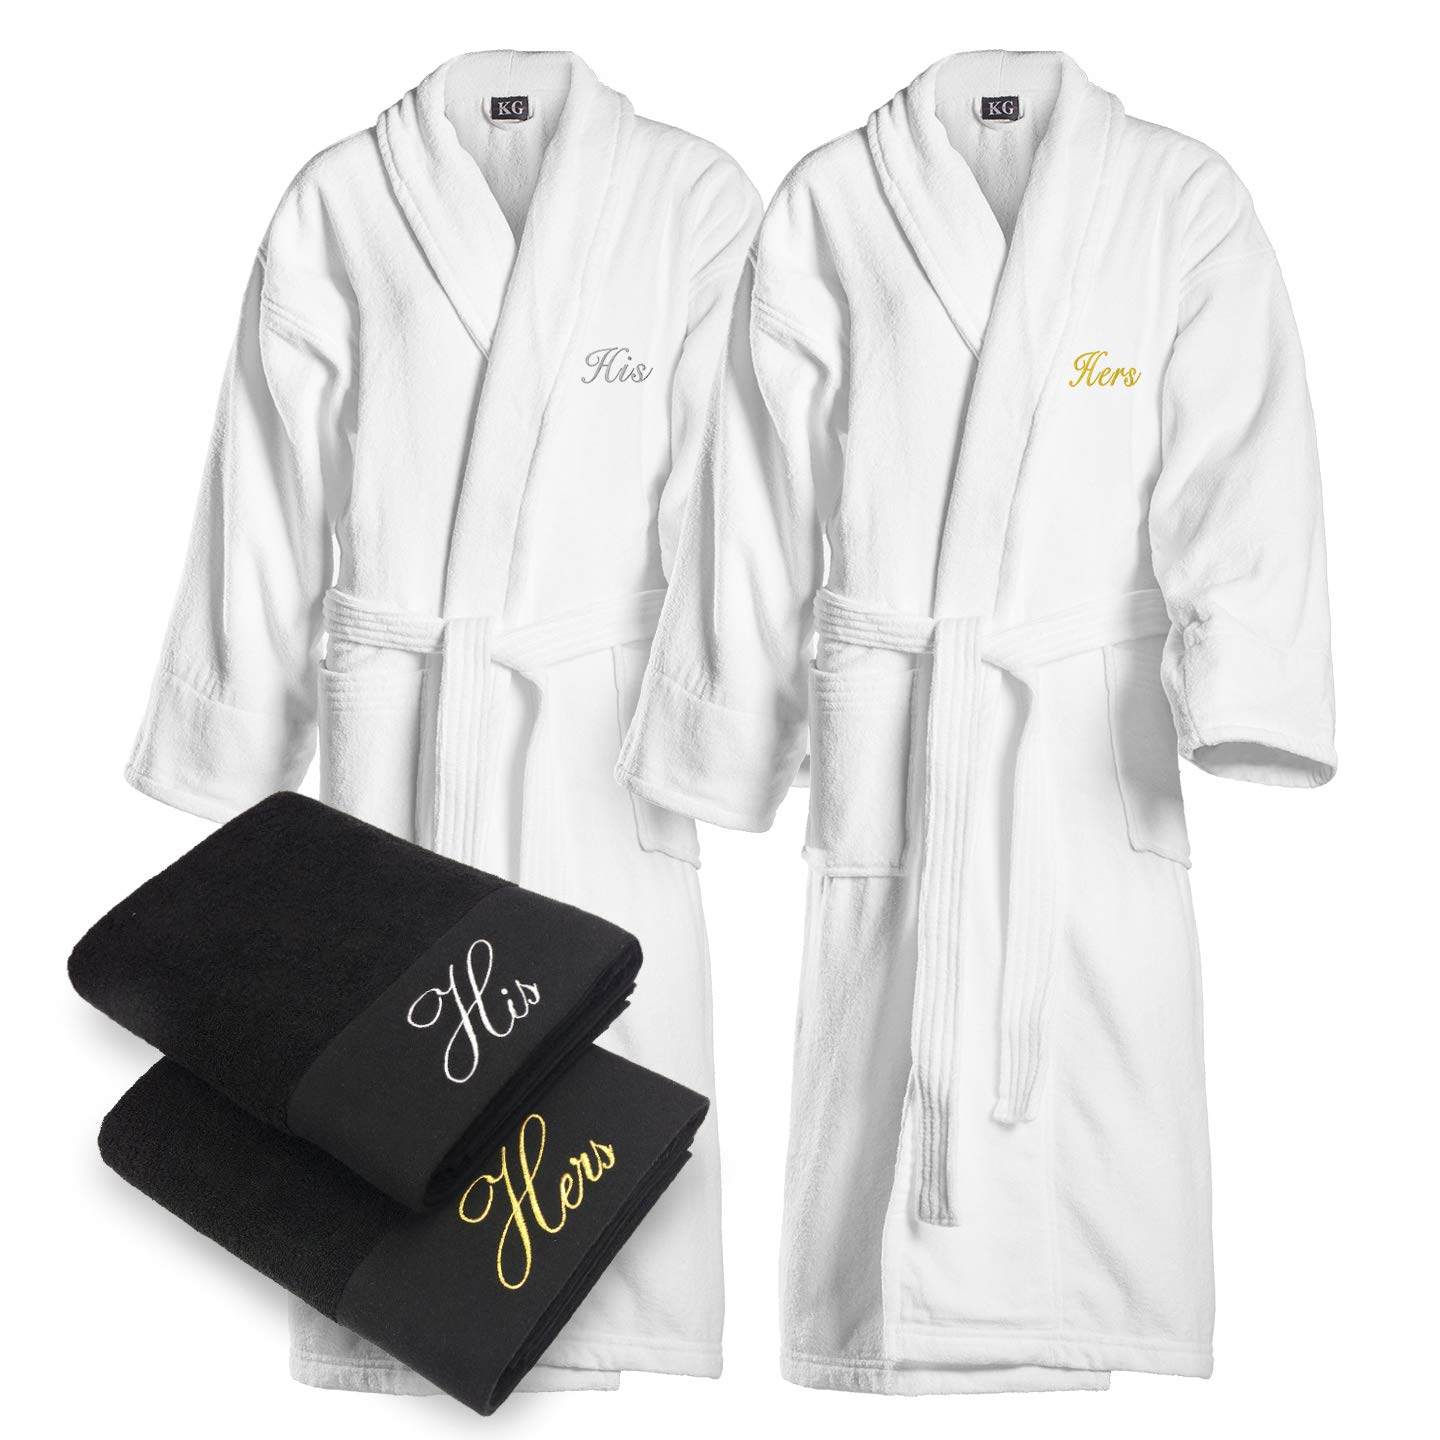 Kaufman - Terry Cloth Bathrobes 100% Cotton - His and Hers Embroidered Velour Shawl Set of Robes with His and Hers Black Towel Set 30''x58'' 4-PK